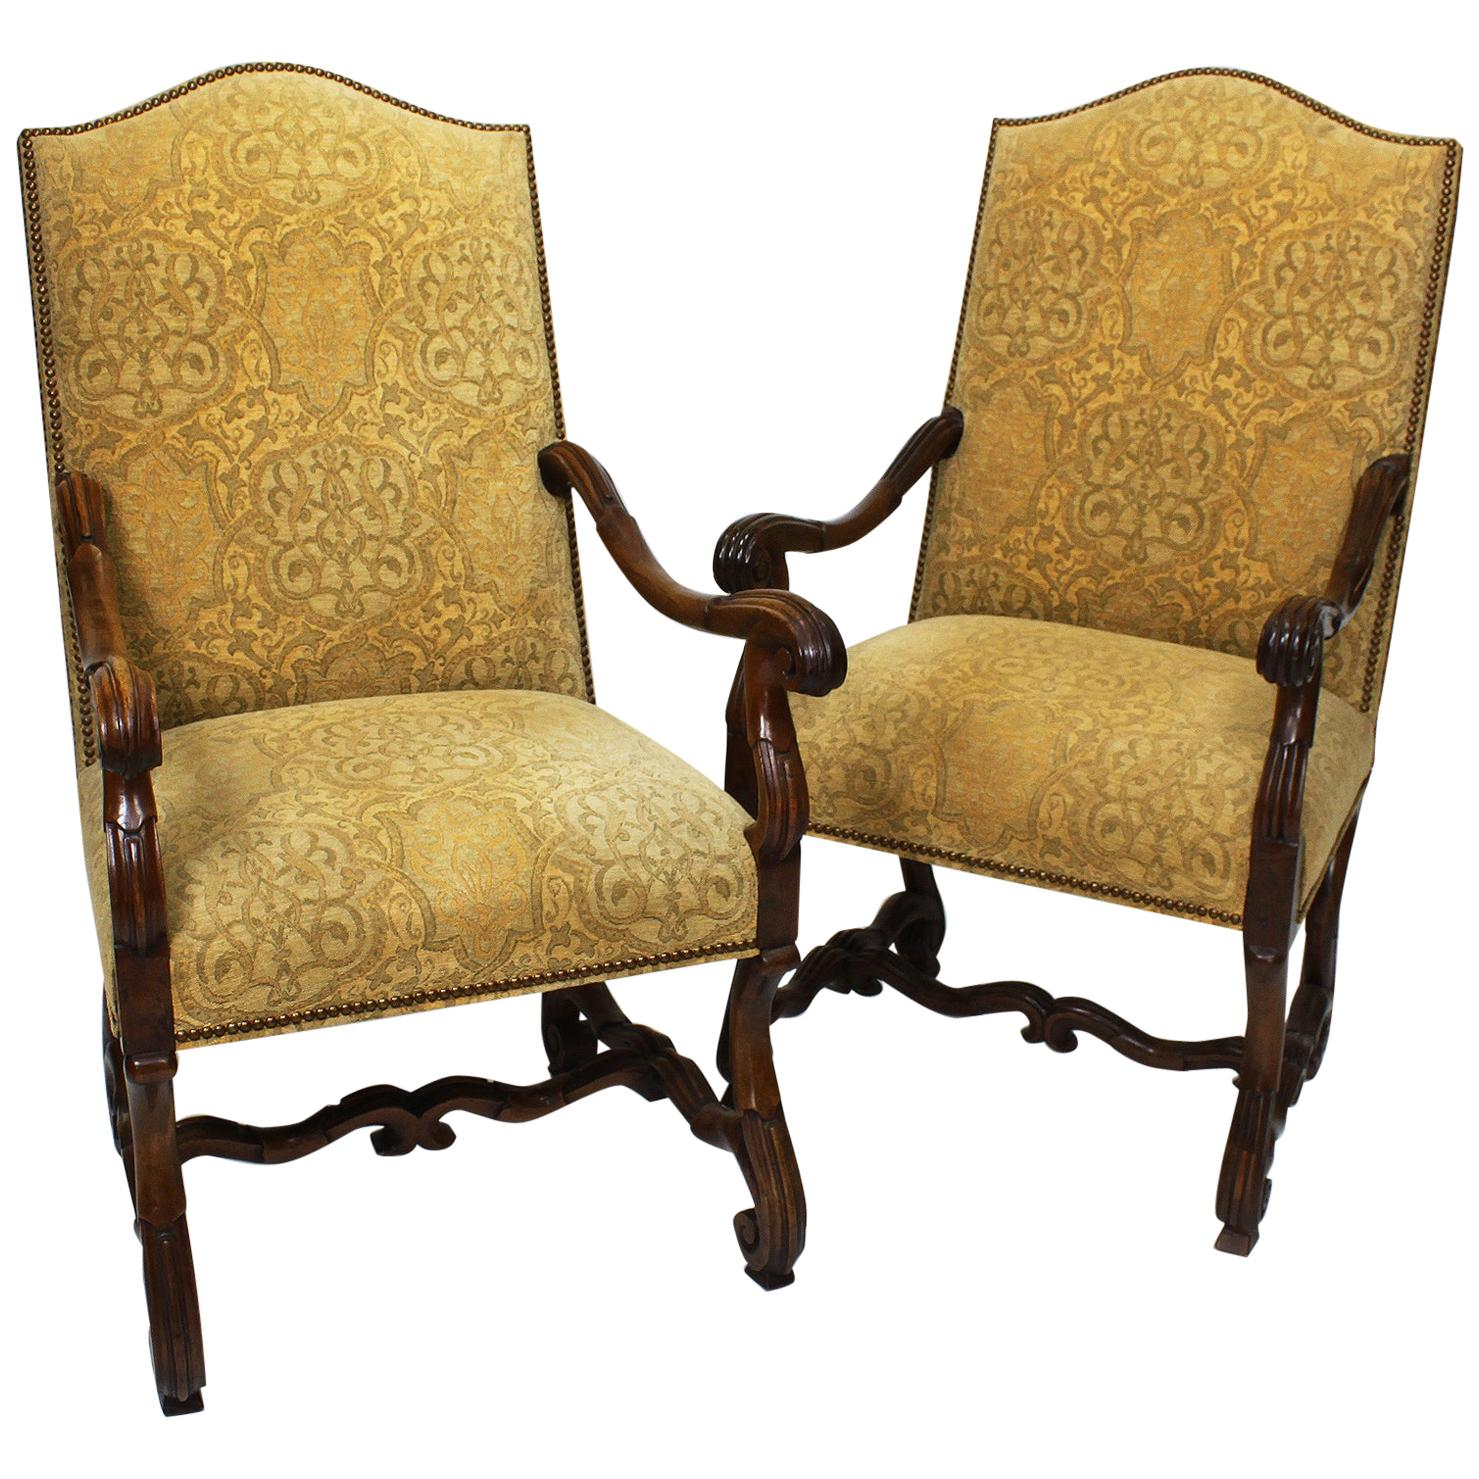 Pair of 19th Century Baroque Revival Style Carved Walnut Throne Armchairs